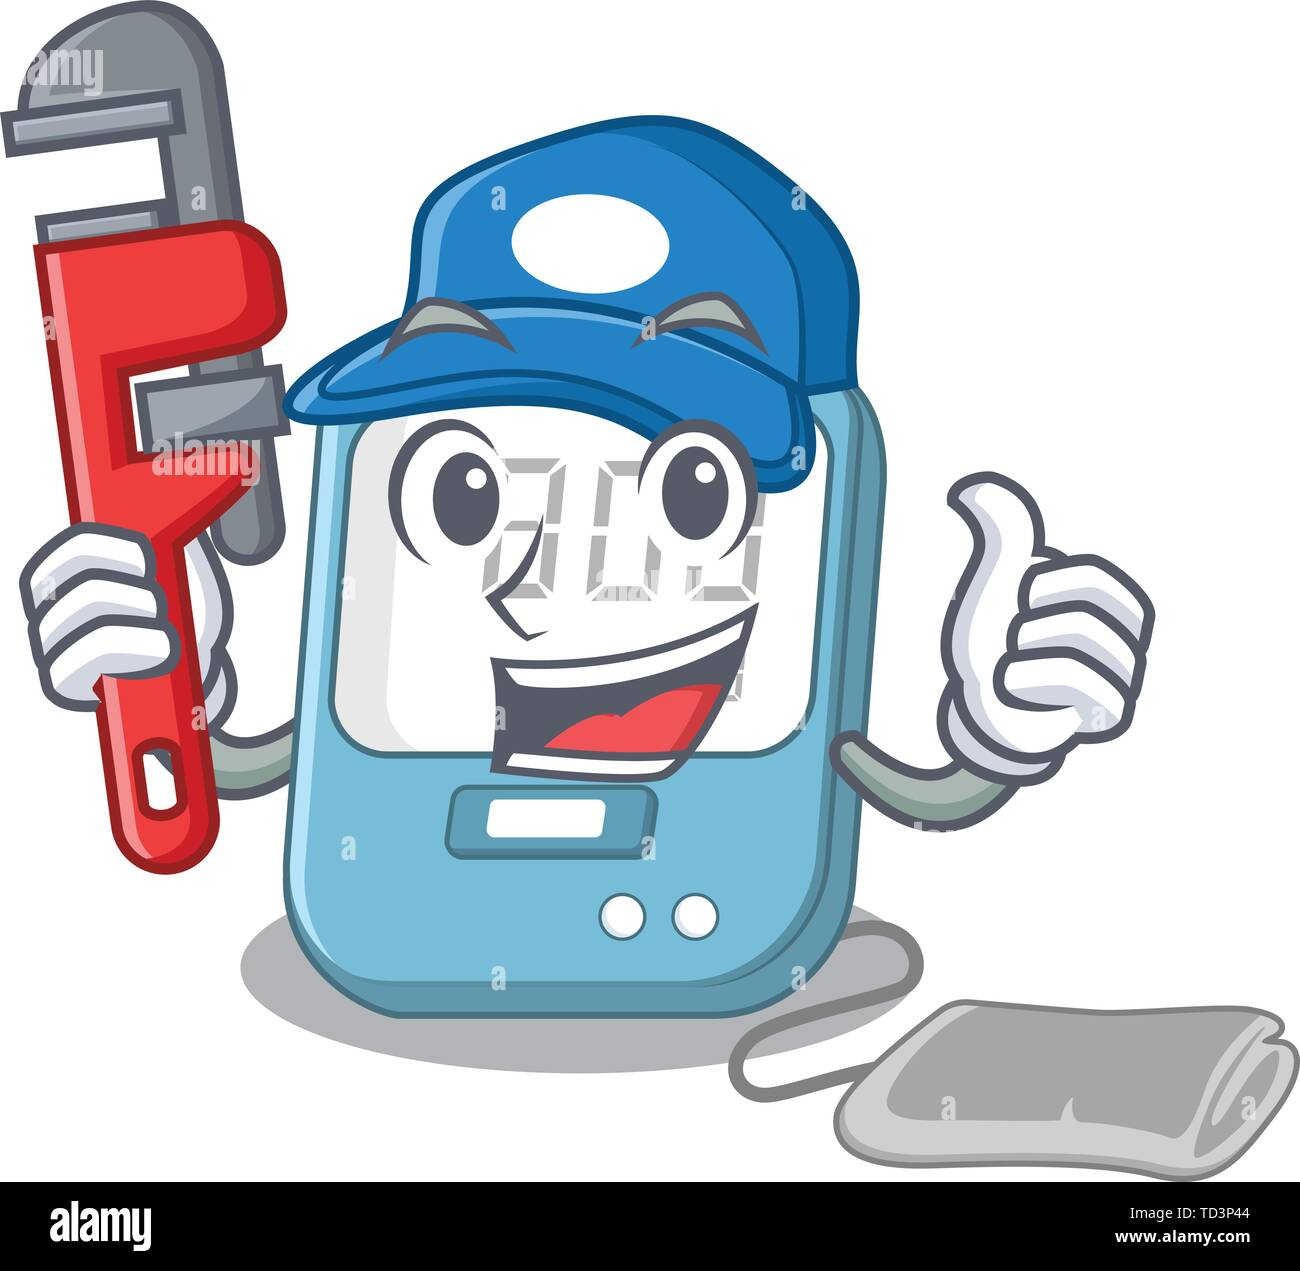 Plumber blood pressure toy above cartoon table - Stock Image